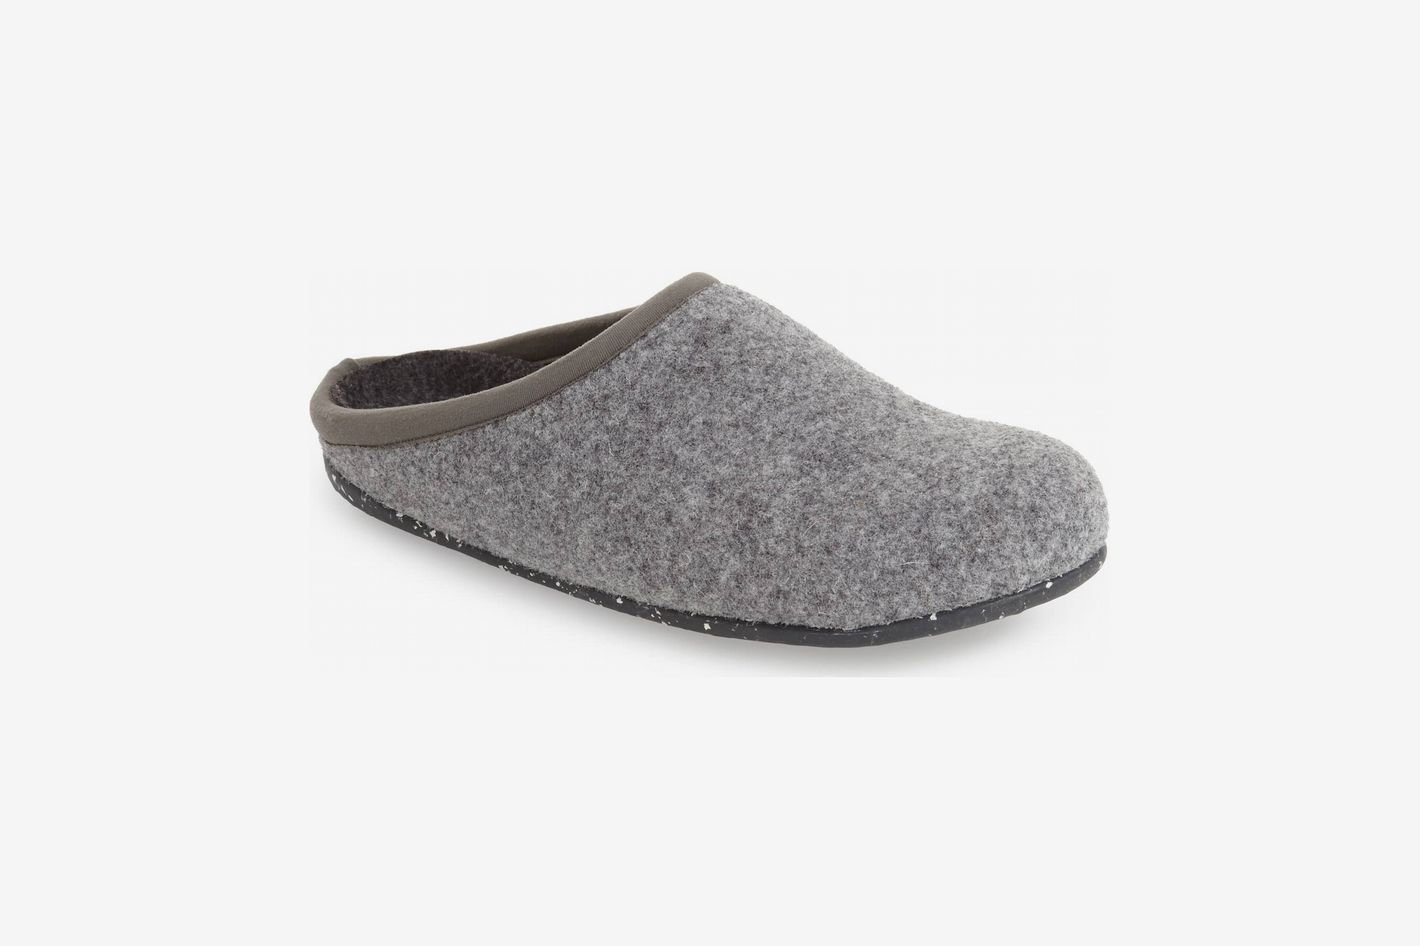 32c4d8219d654c The 5 Best Wool Slippers to Give this Holiday Season